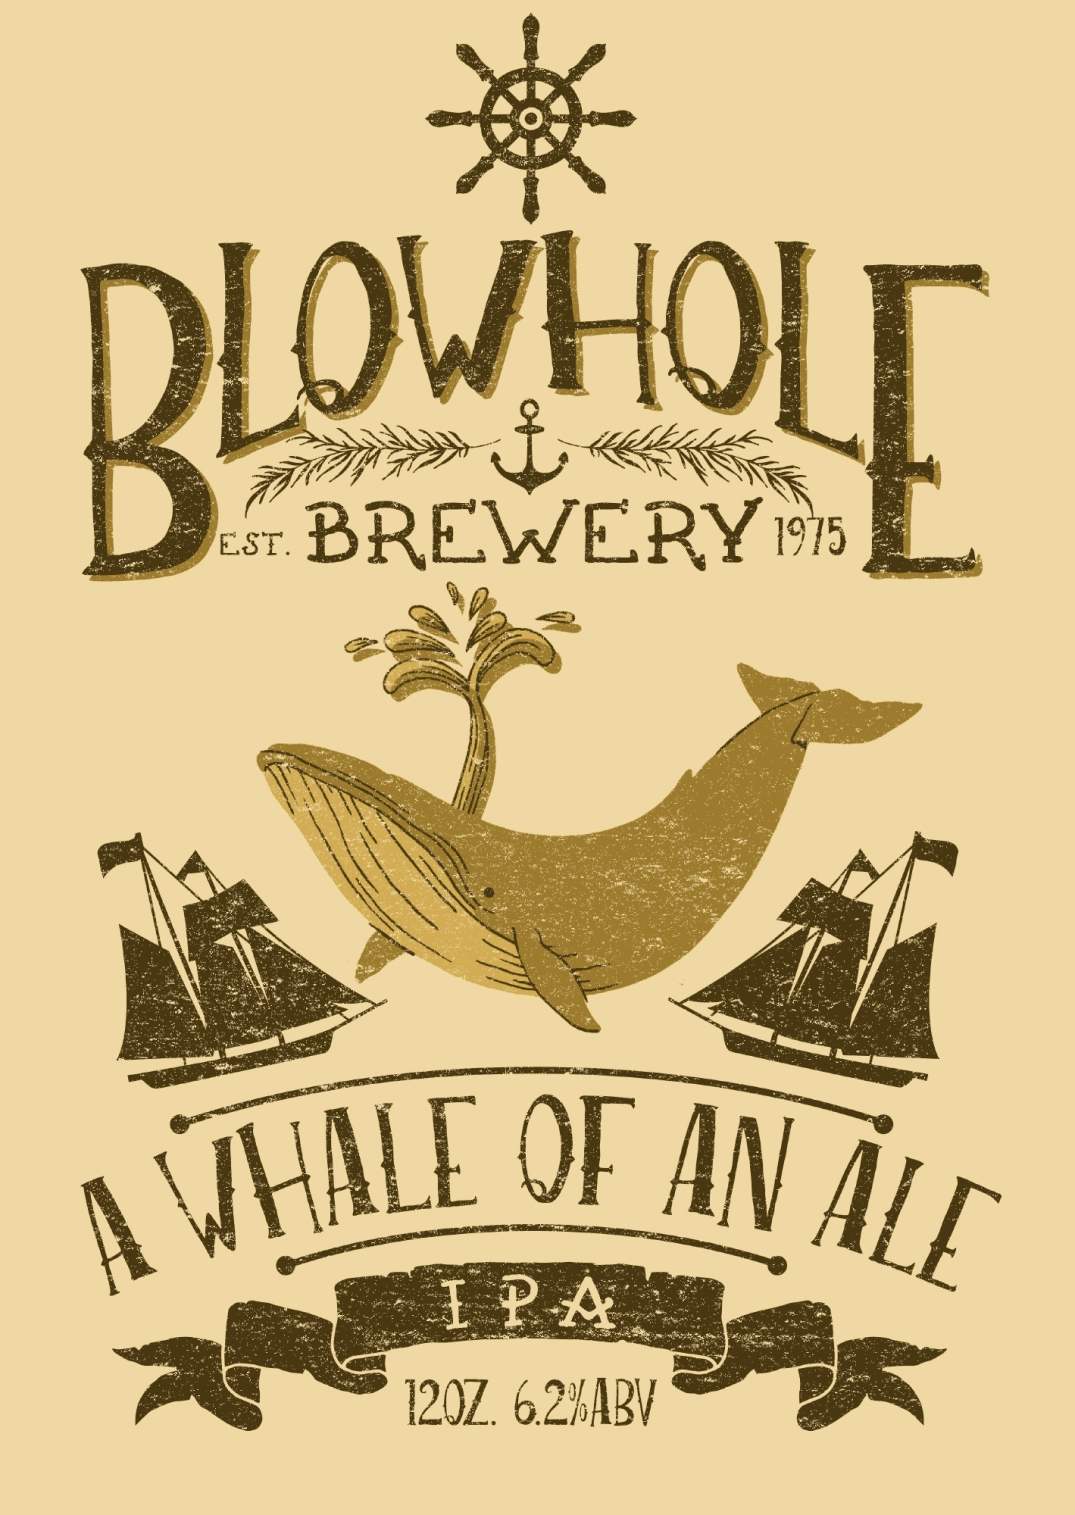 blowhole_brew